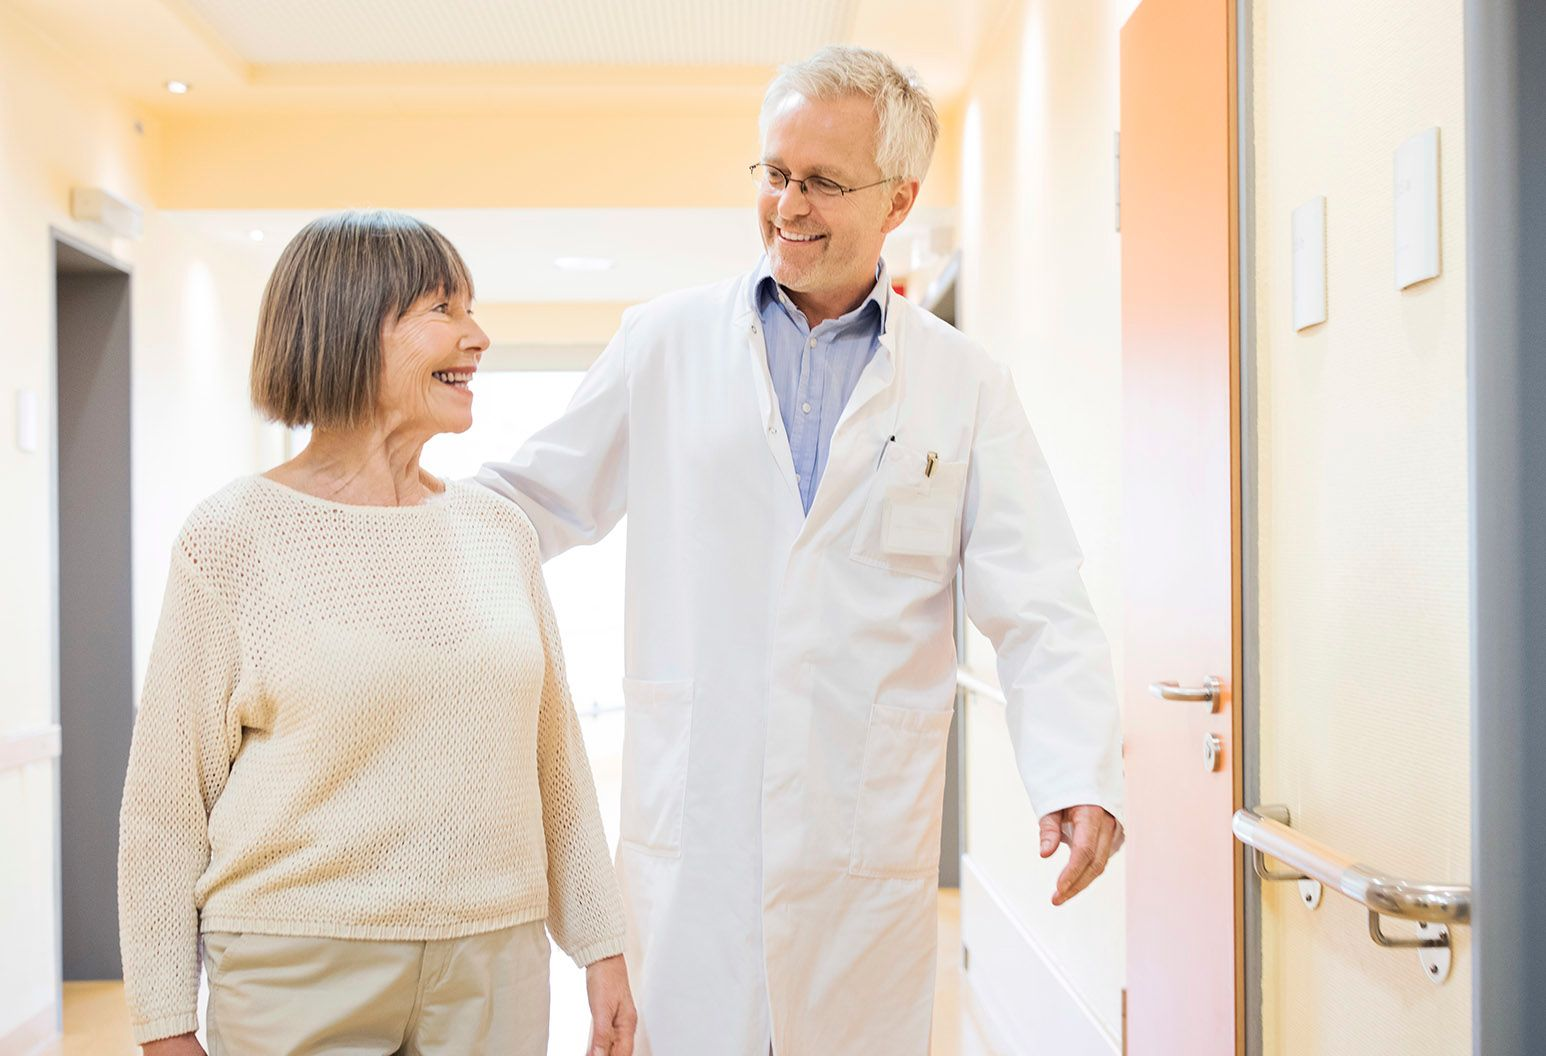 Mature male doctor in white lab coat is walking with senior woman in corridor of hospital